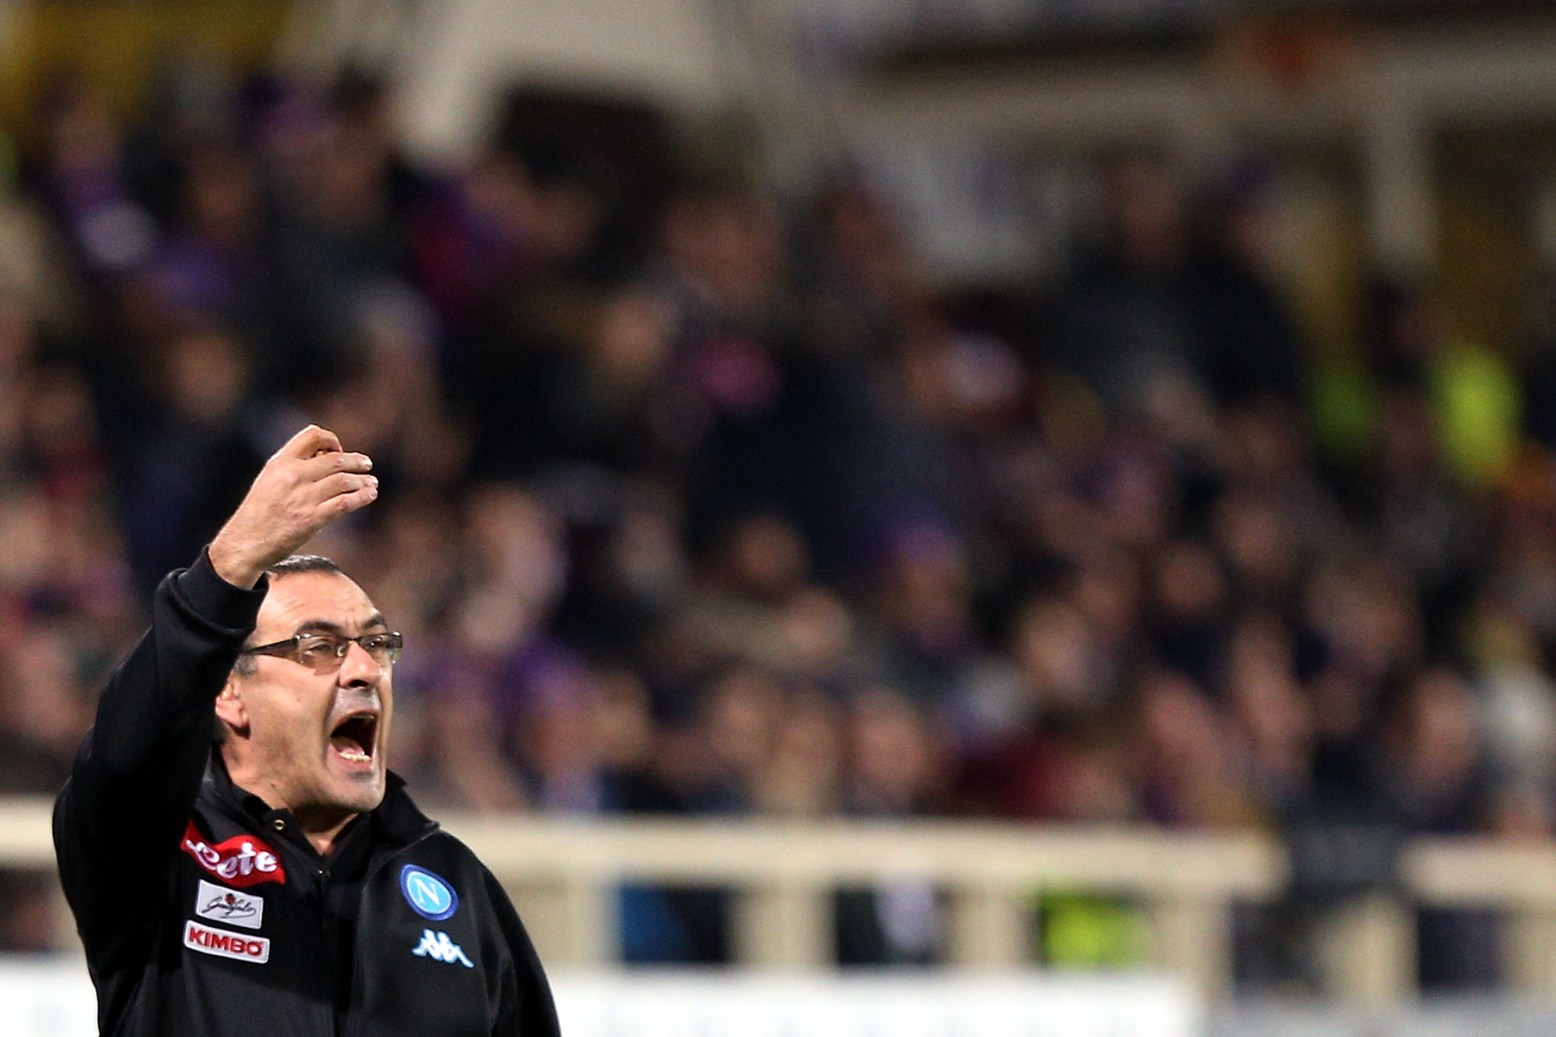 FLORENCE, ITALY - DECEMBER 22: Maurizio Sarri manager of SSC Napoli shouts instructions to his players during the Serie A match between ACF Fiorentina and SSC Napoli at Stadio Artemio Franchi on December 22, 2016 in Florence, Italy. (Photo by Gabriele Maltinti/Getty Images)